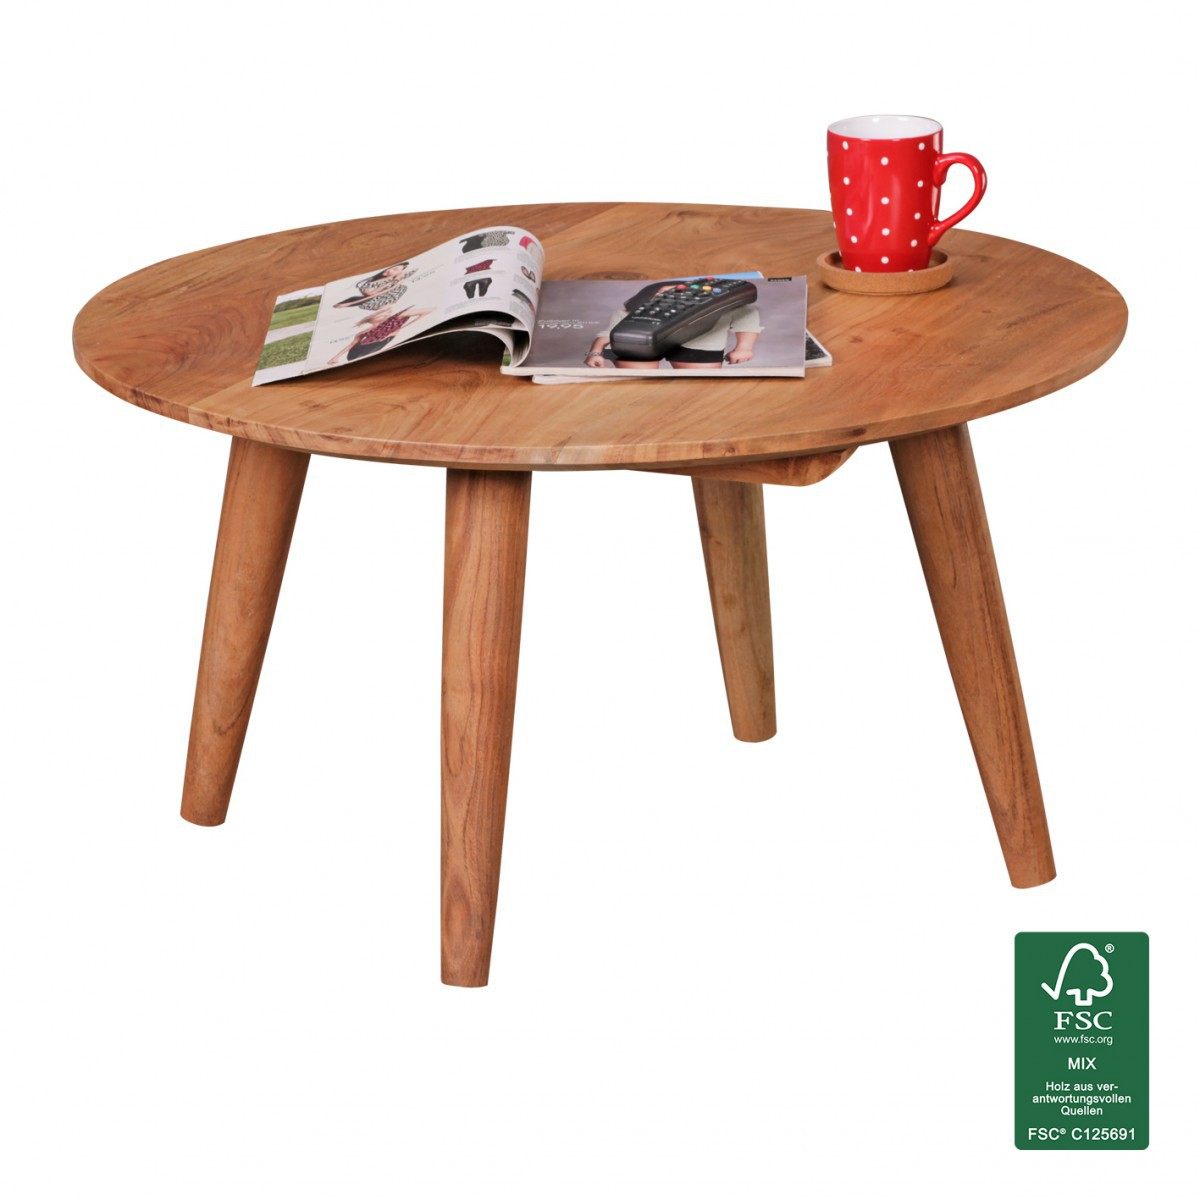 Finebuy table basse en bois massif acacia table basse for Table basse en bois